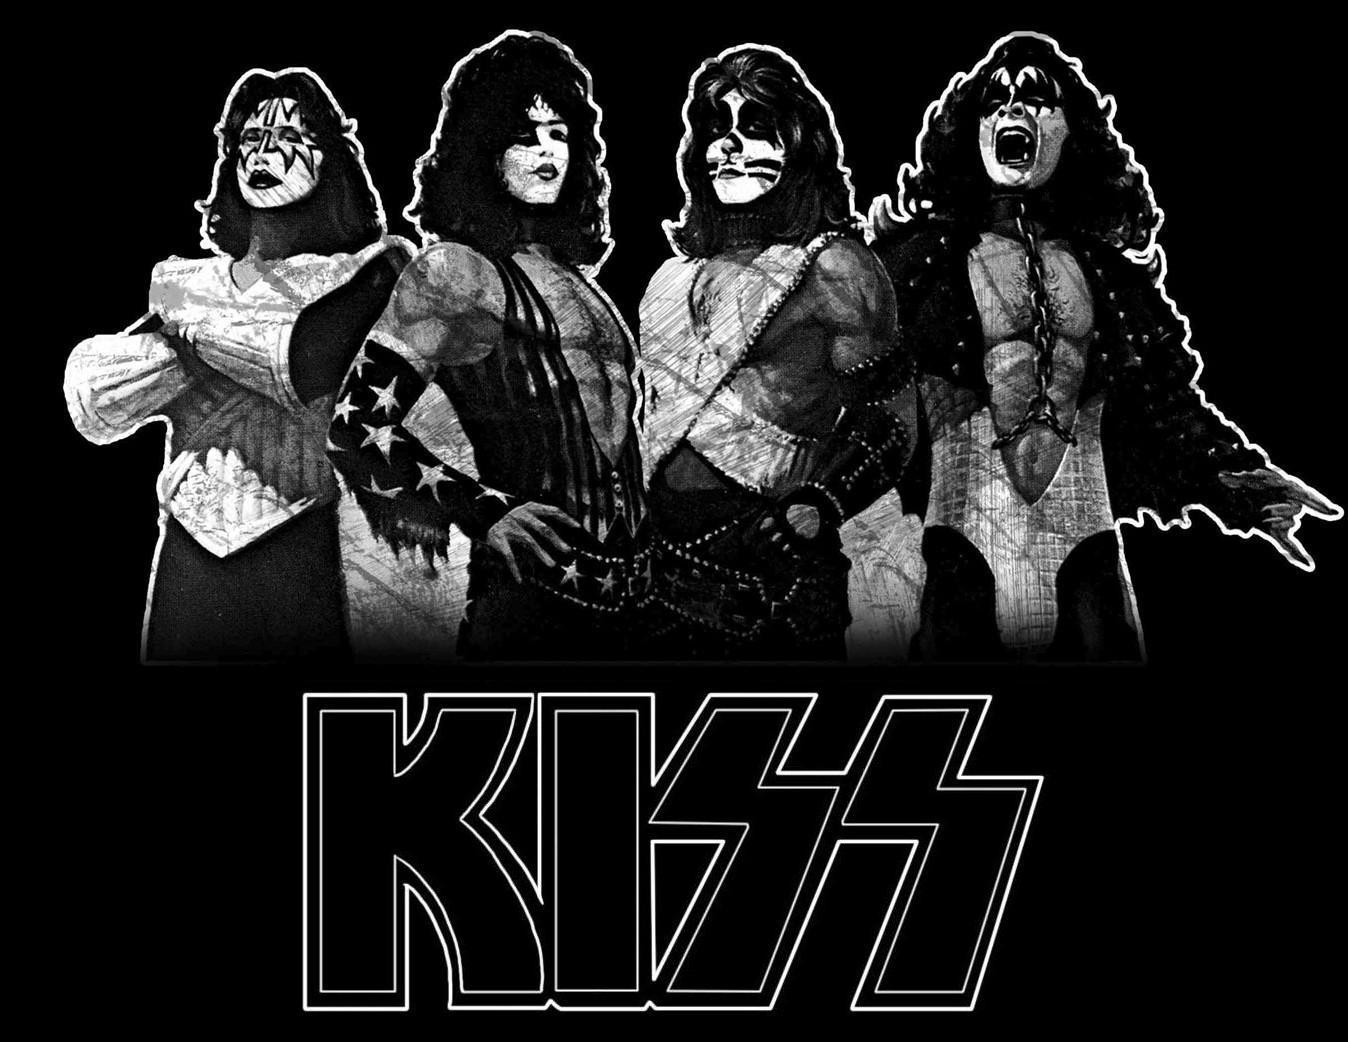 kiss band wallpapers - wallpaper cave